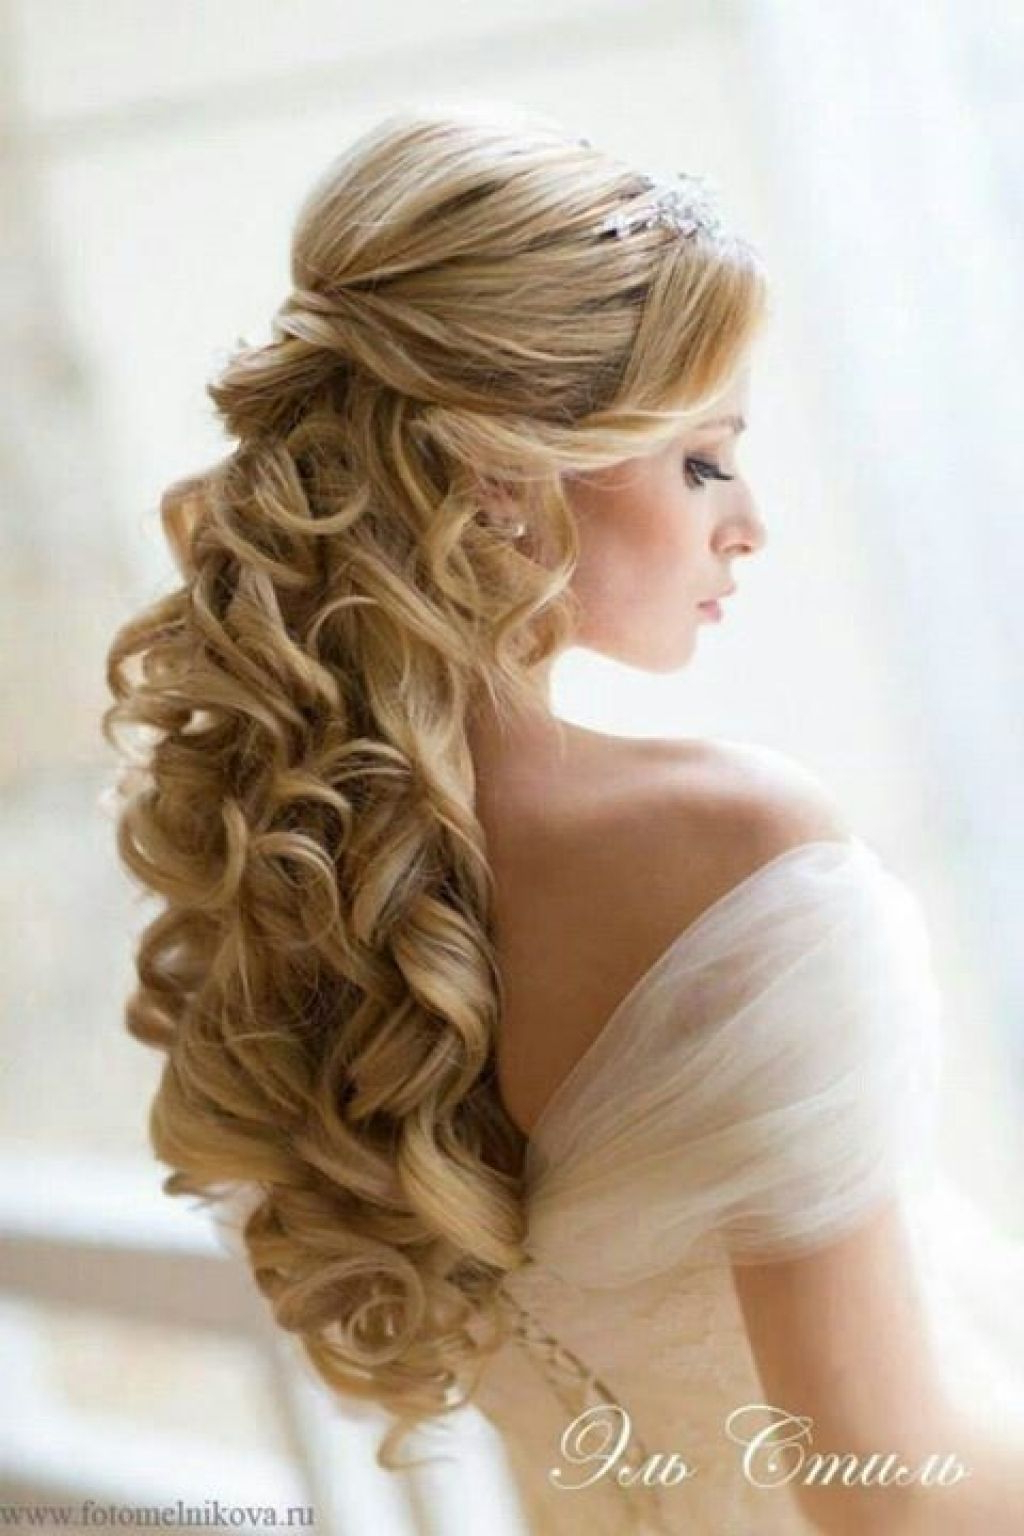 Wedding Hairstyles For Long Hair Half Up Dfemale Beauty Tips Easy Pertaining To Fashionable Large Curly Bun Bridal Hairstyles With Beaded Clip (View 17 of 20)